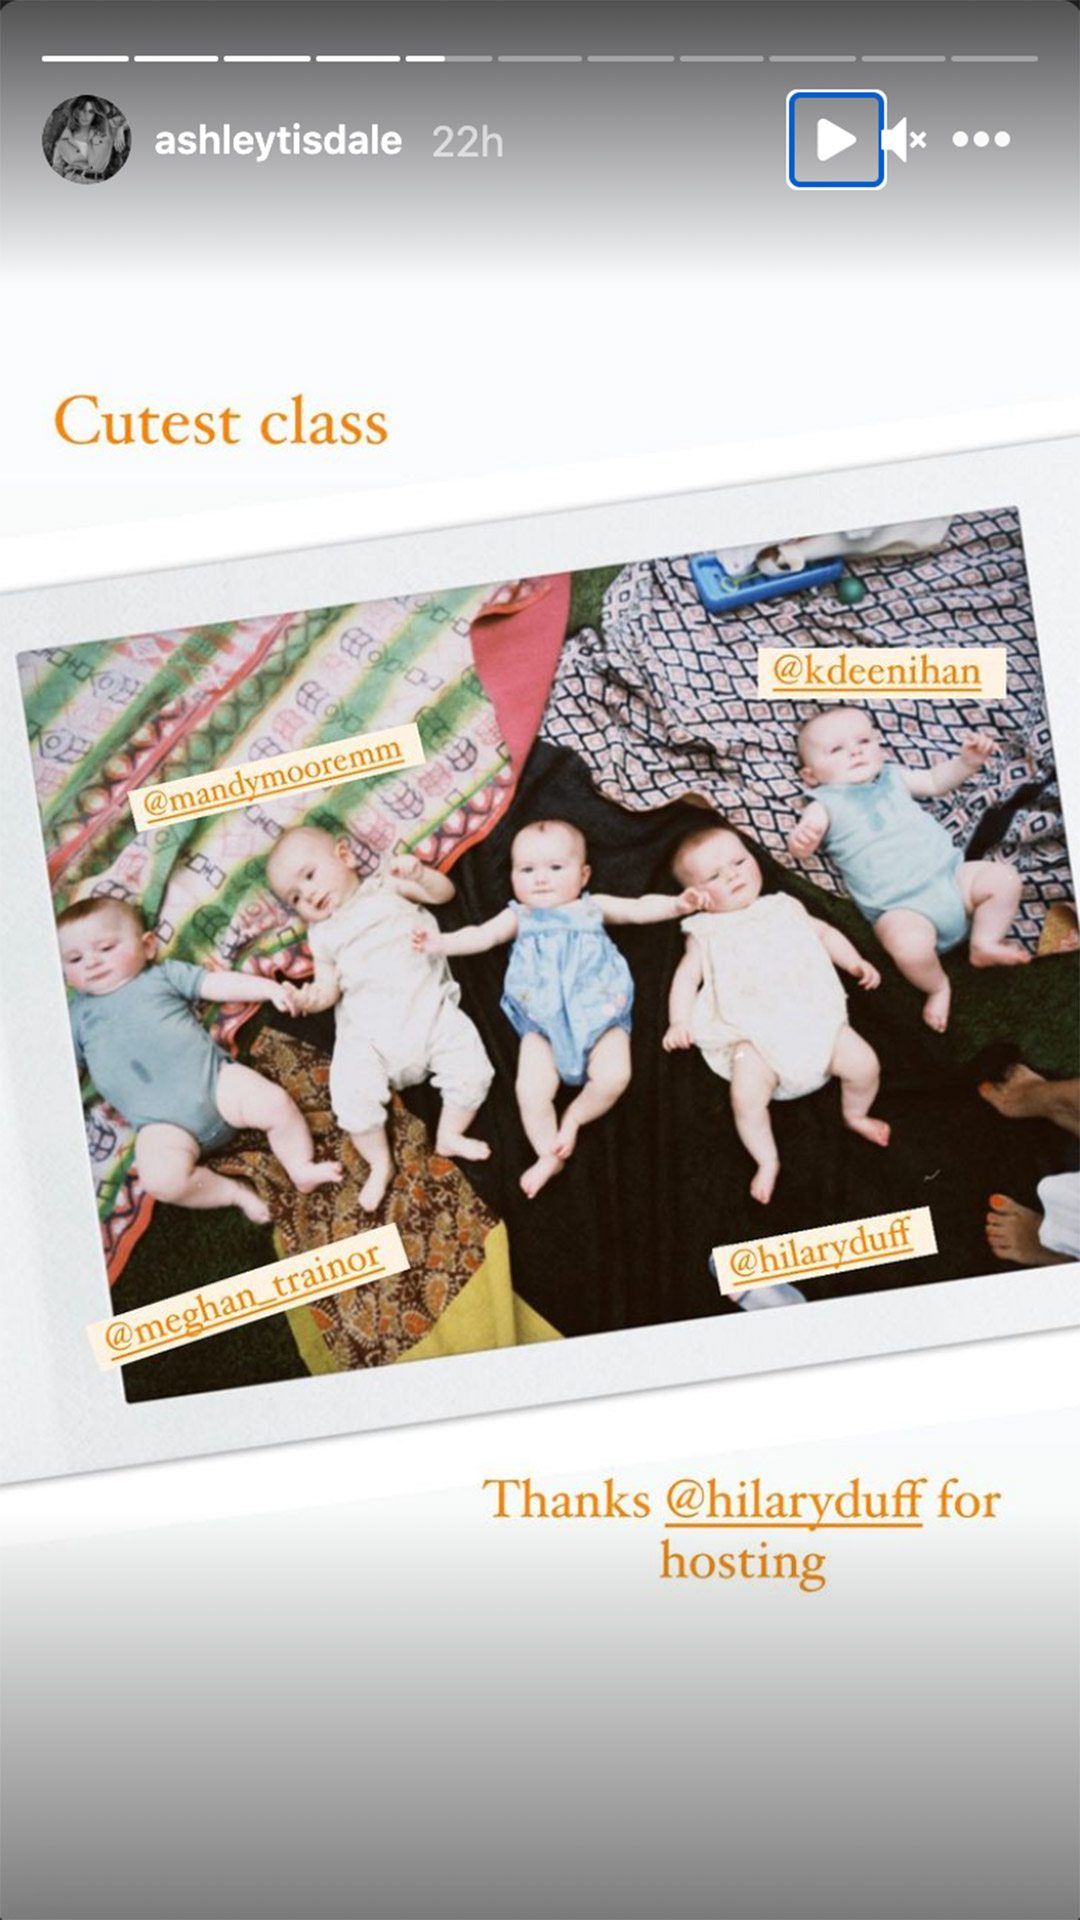 Babies of Mandy Moore, Ashley Tisdale, Meghan Trainor, Hilary Duff join for mommy and me music class